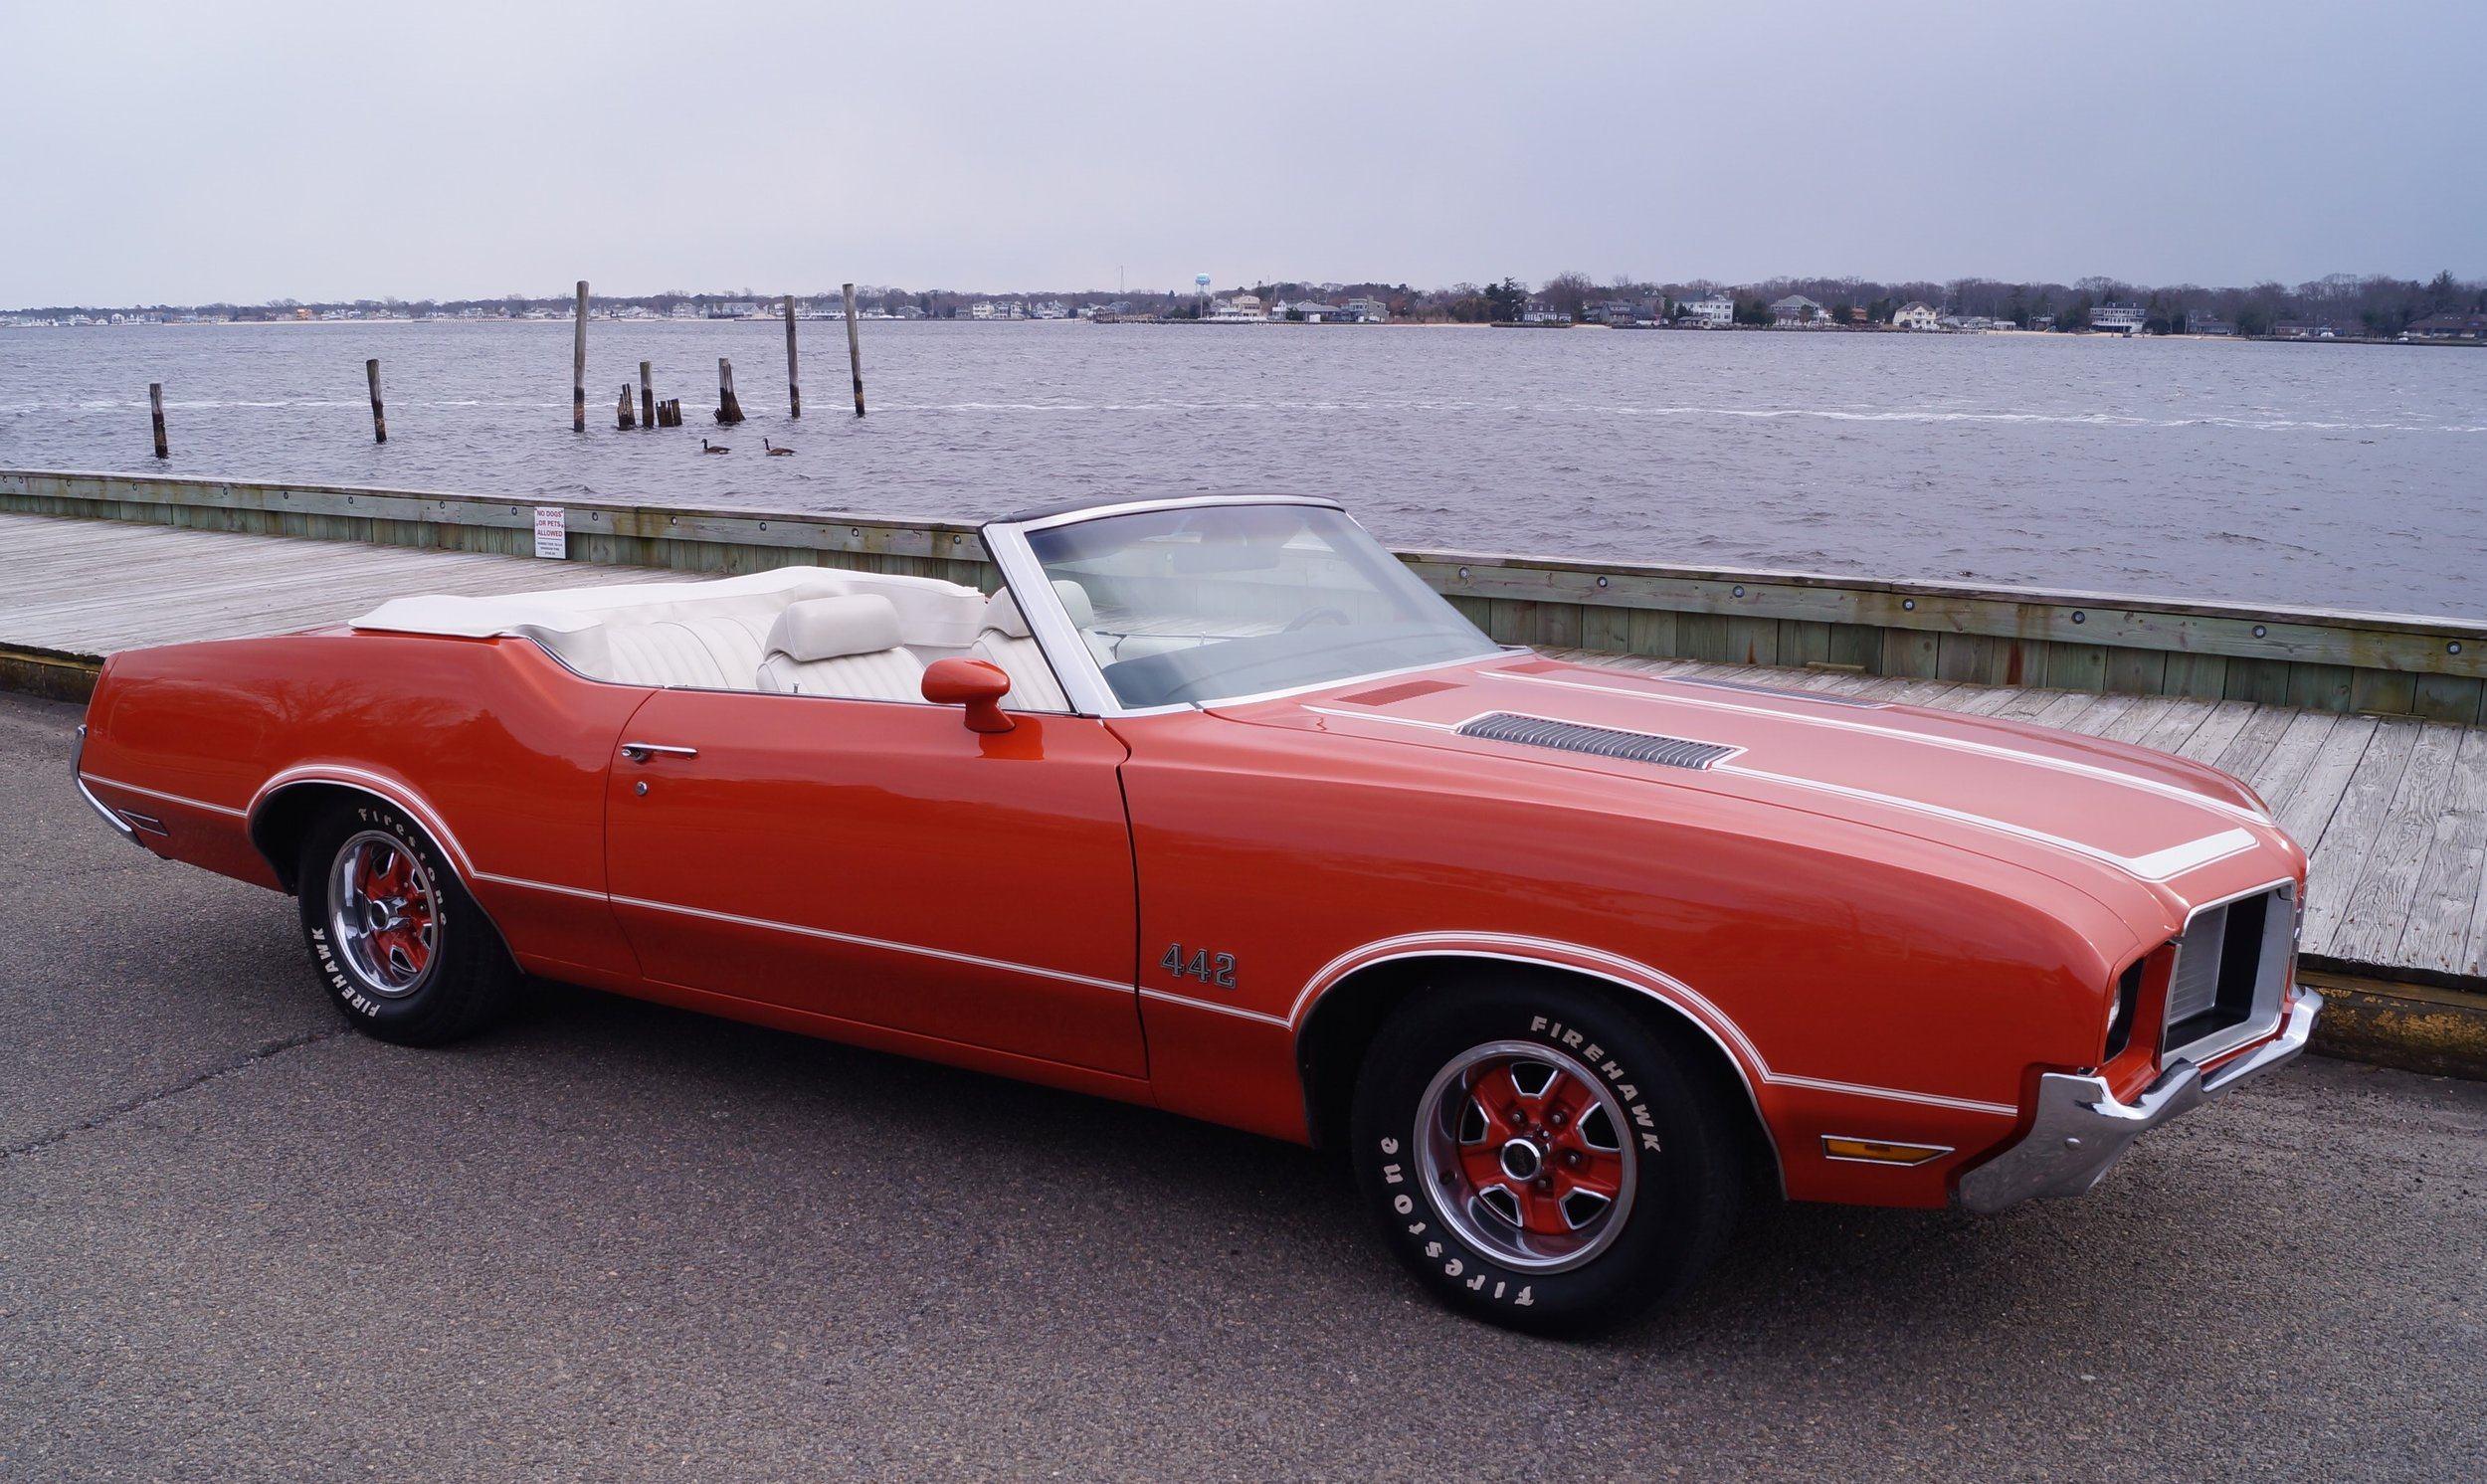 1972 Oldsmobile 4-4-2 - The one that got away... but found its way home again! Years ago, the owner made the decision to part ways with this 4-4-2. But as the years passed, like many of us, started to really miss the car and regret the decision of selling. So the search was on for another 4-4-2 to fill the void. Little did the owner know, when searching the classified ads, that they'd stumble across the very car they had sold years ago! The owner quickly snatched the car back! The Olds was then brought to Coastal Classics for a much needed new paint job and white convertible top. We have a feeling this one won't be getting away again!